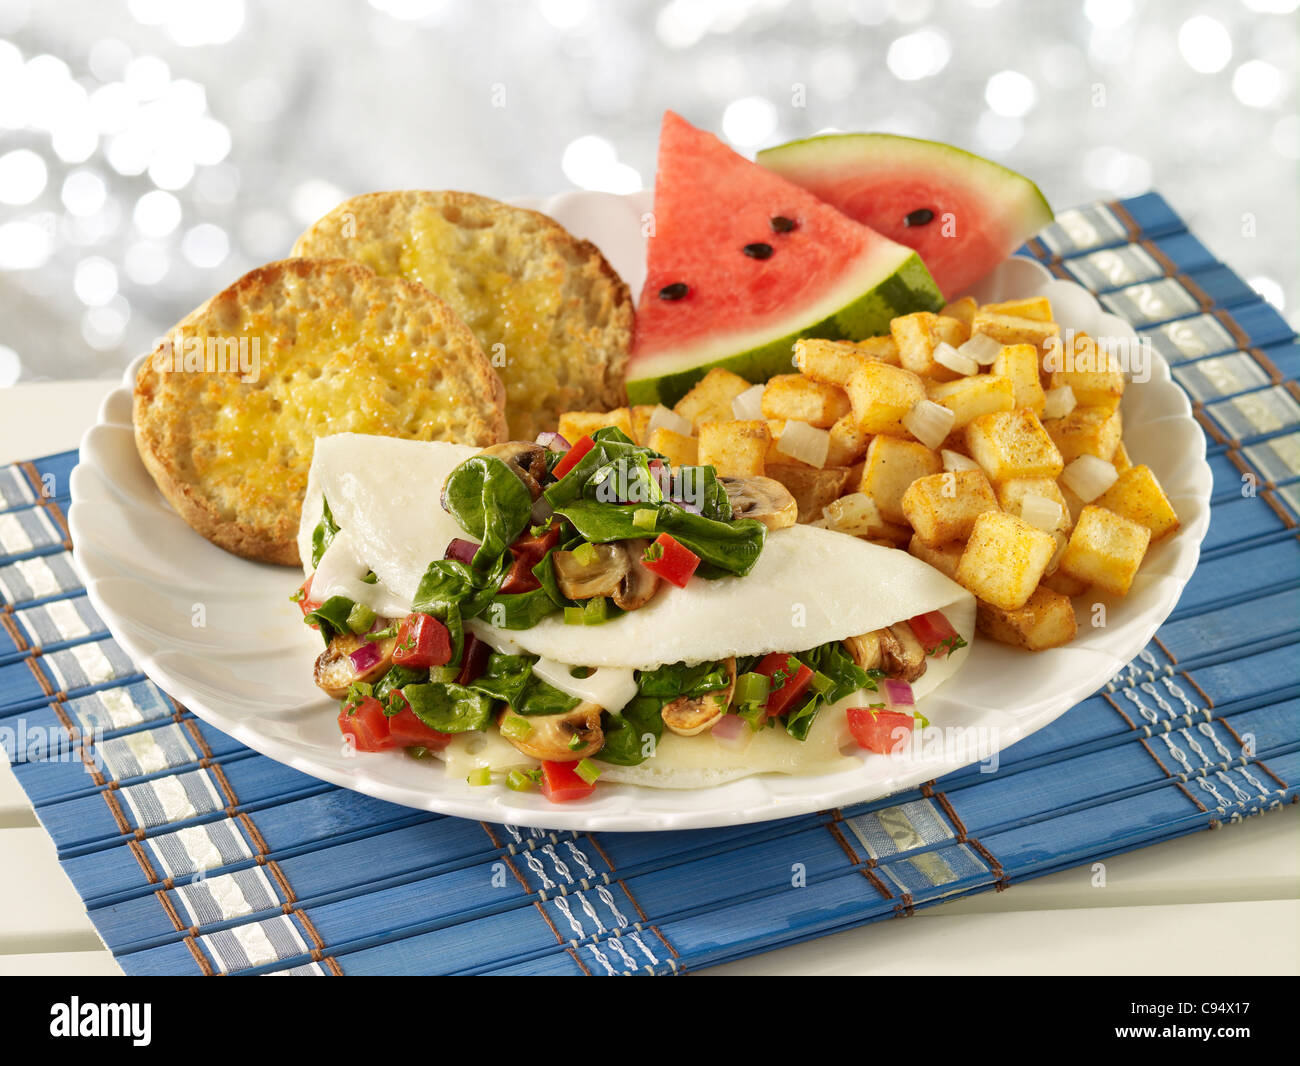 Egg white omelet with spinach, tomato and mushrooms served with potatoes, english muffins and watermelon - Stock Image